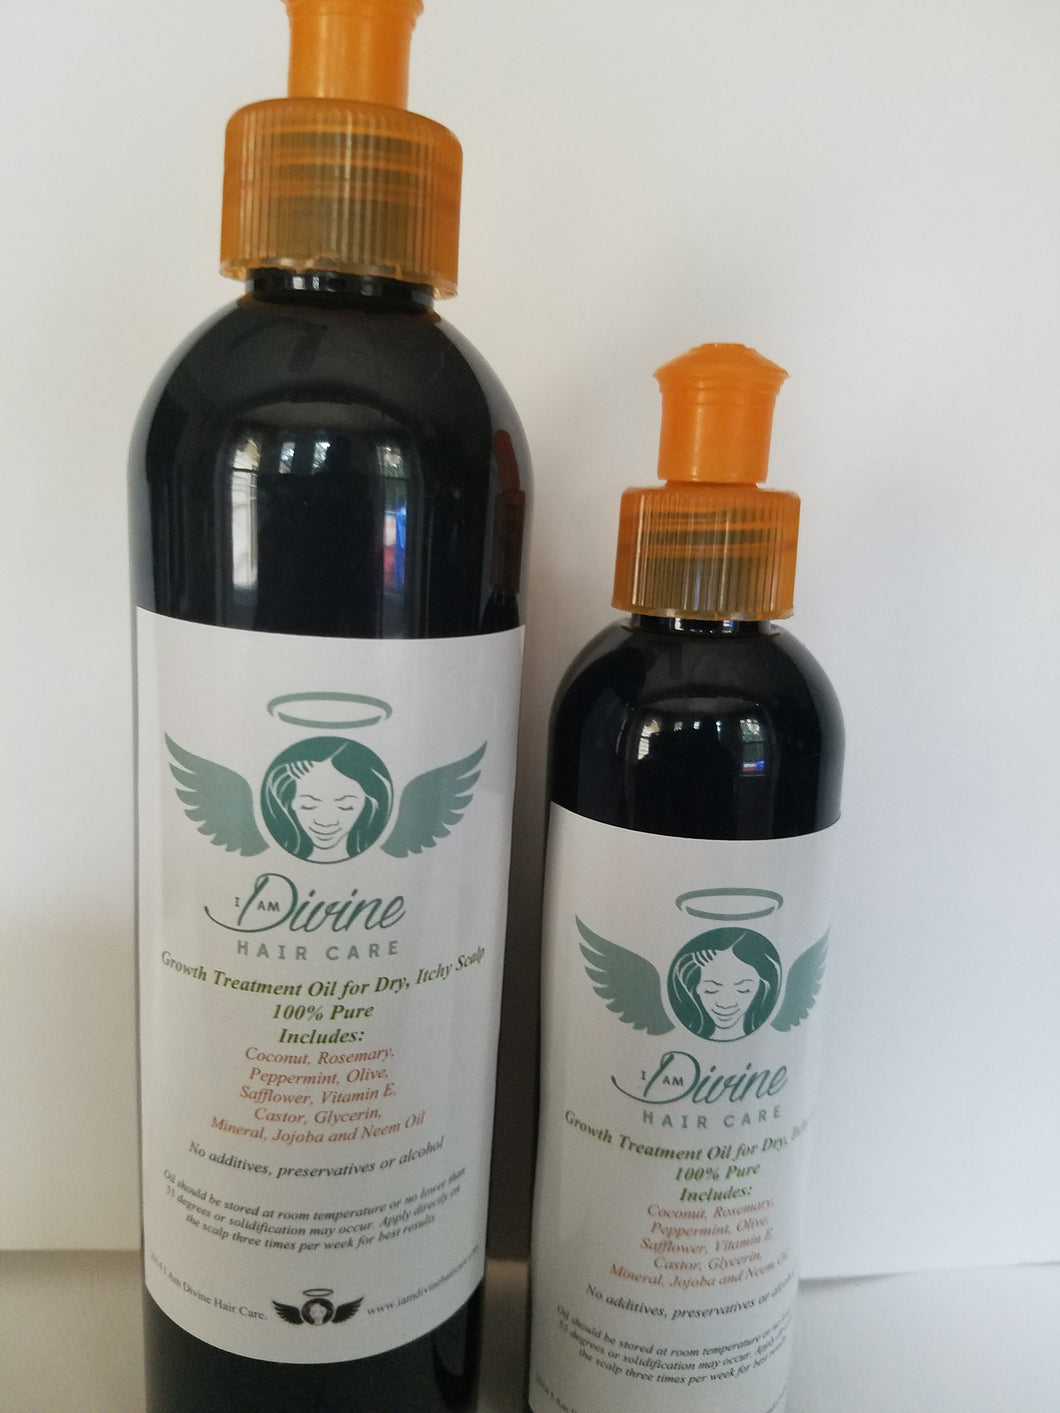 Root Stimulating Shampoo for Dry, Itchy Scalp